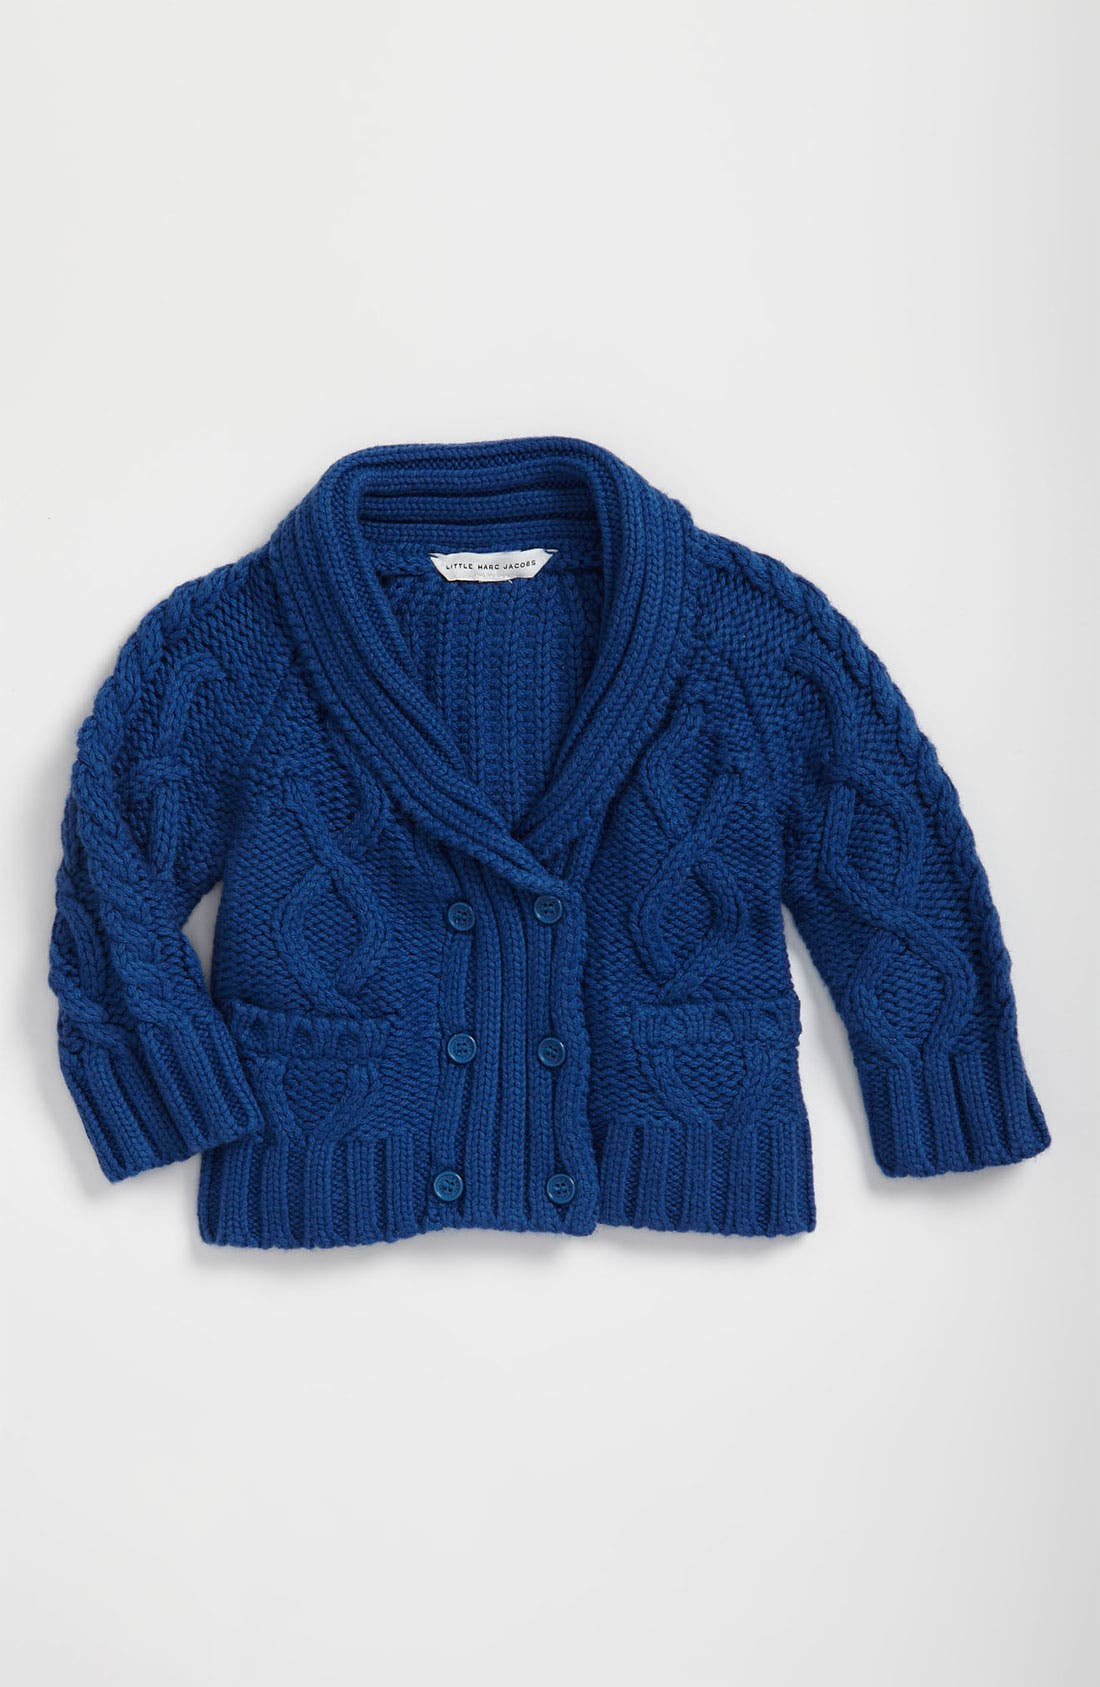 Alternate Image 1 Selected - LITTLE MARC JACOBS Knit Cardigan (Toddler)